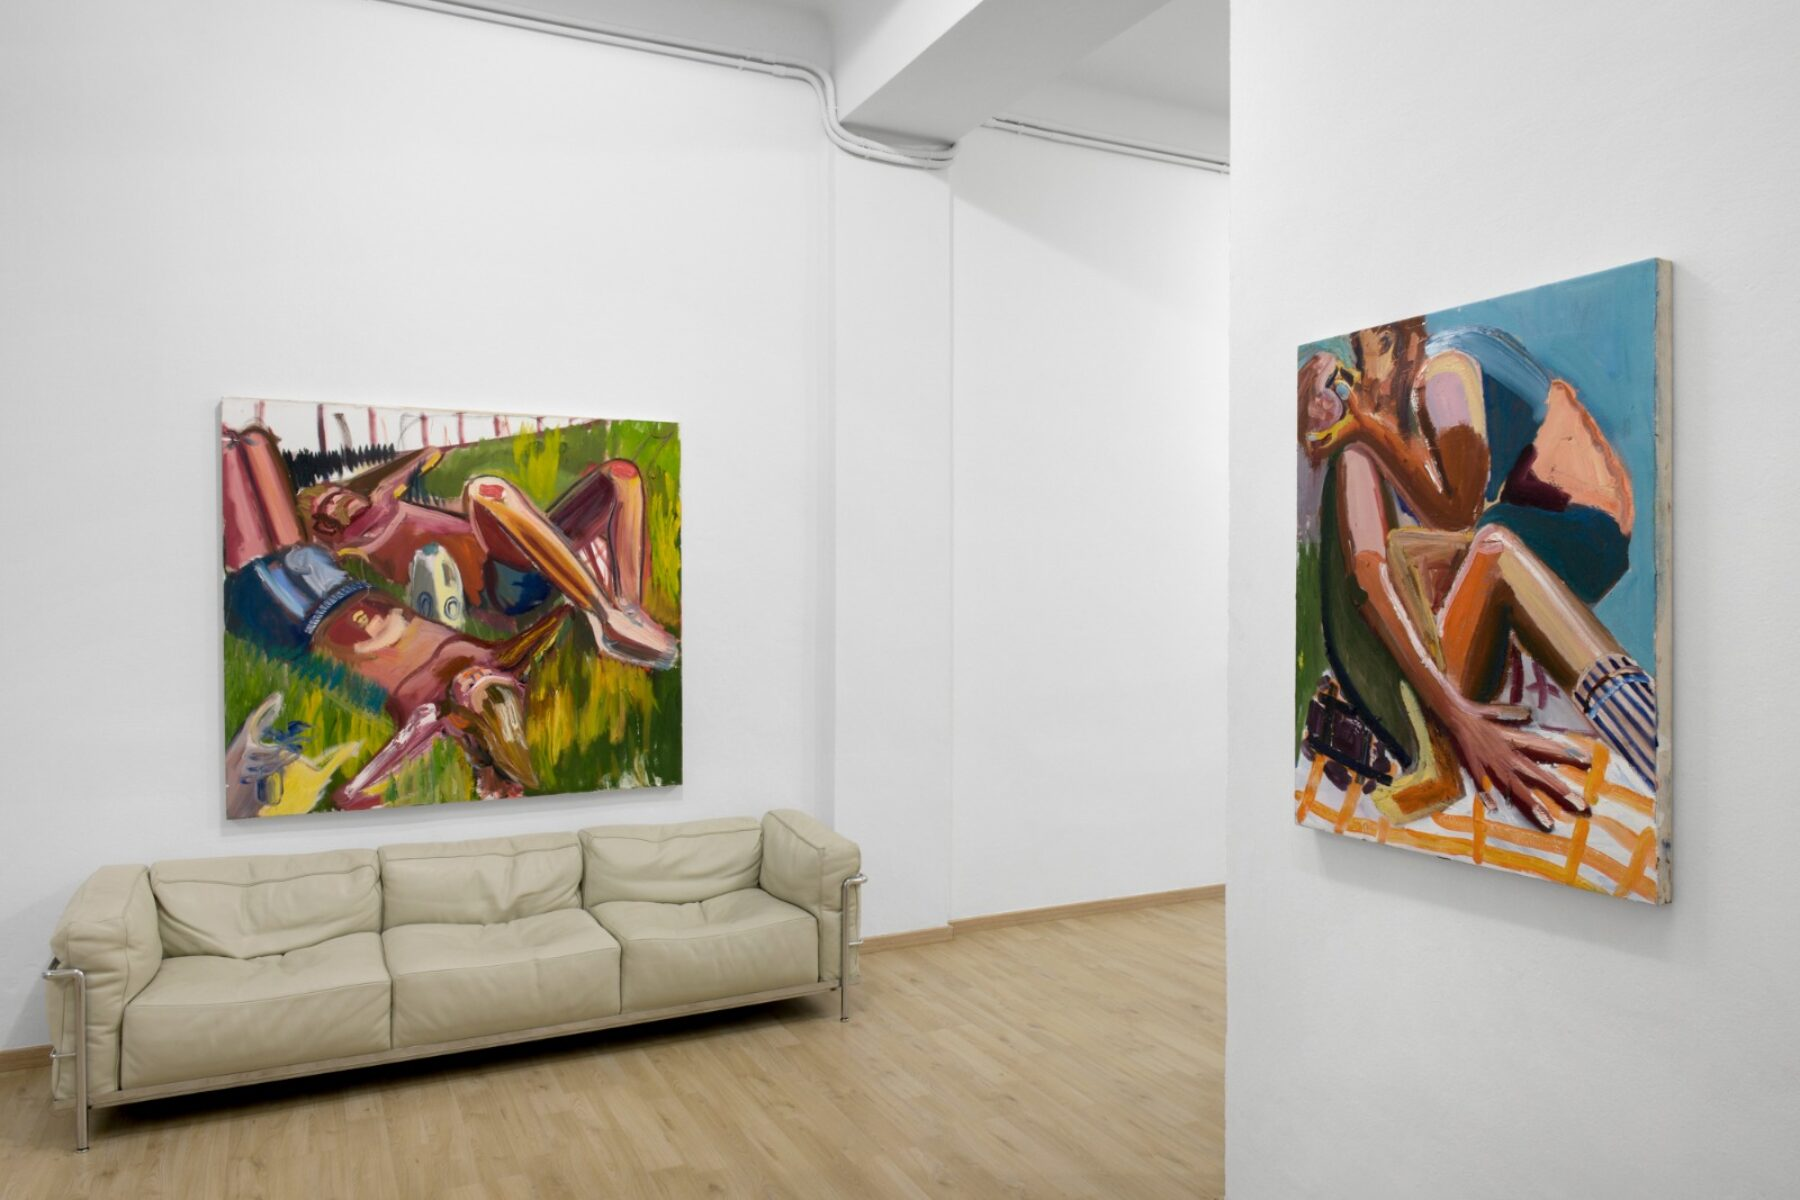 Jacob Patrick Brooks, Panic Room, installation view, A.More Gallery, Milano